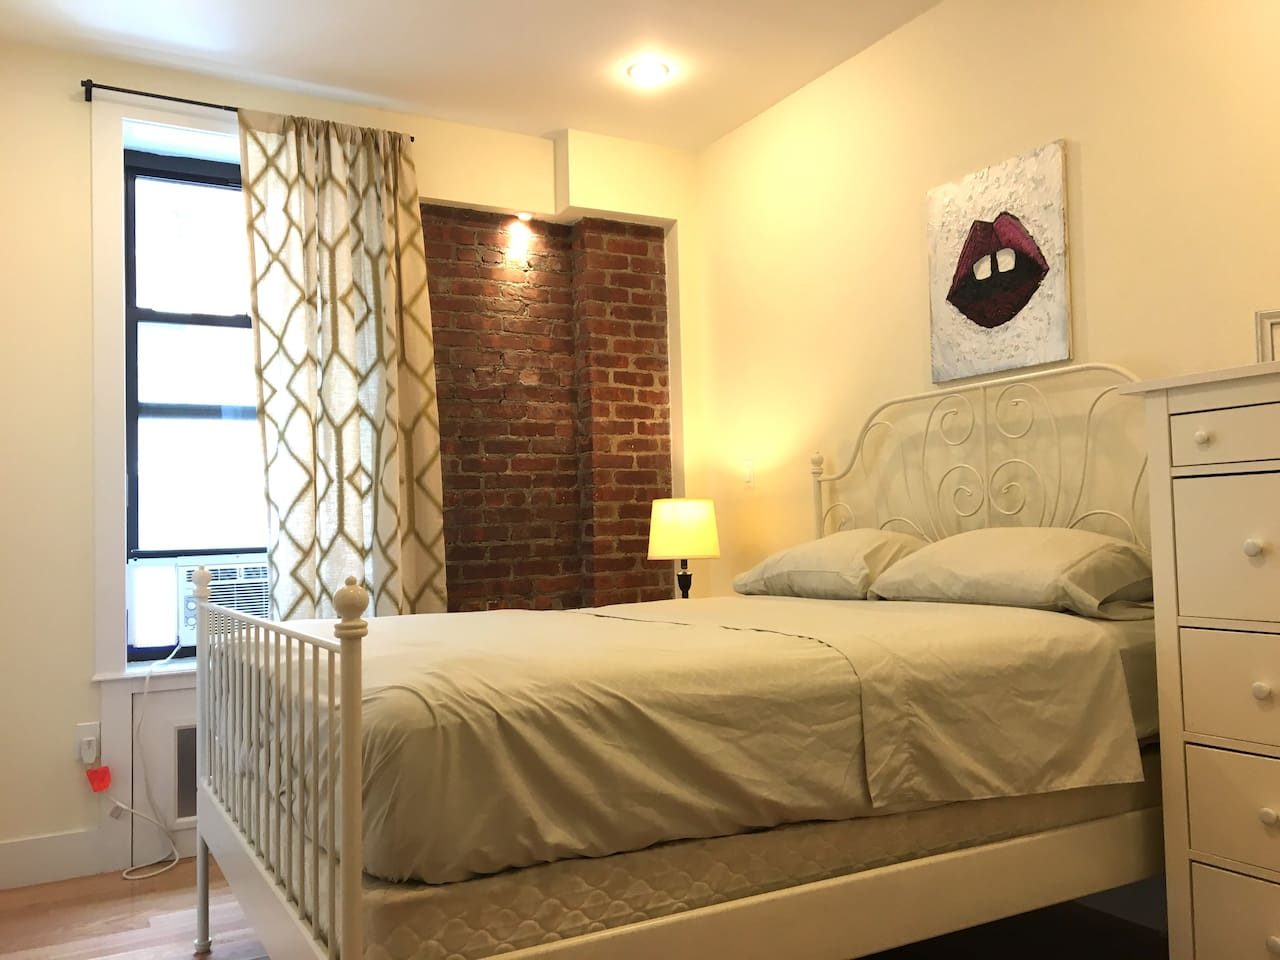 Queen- sized bed, dresser, and closet to make you feel right at home!